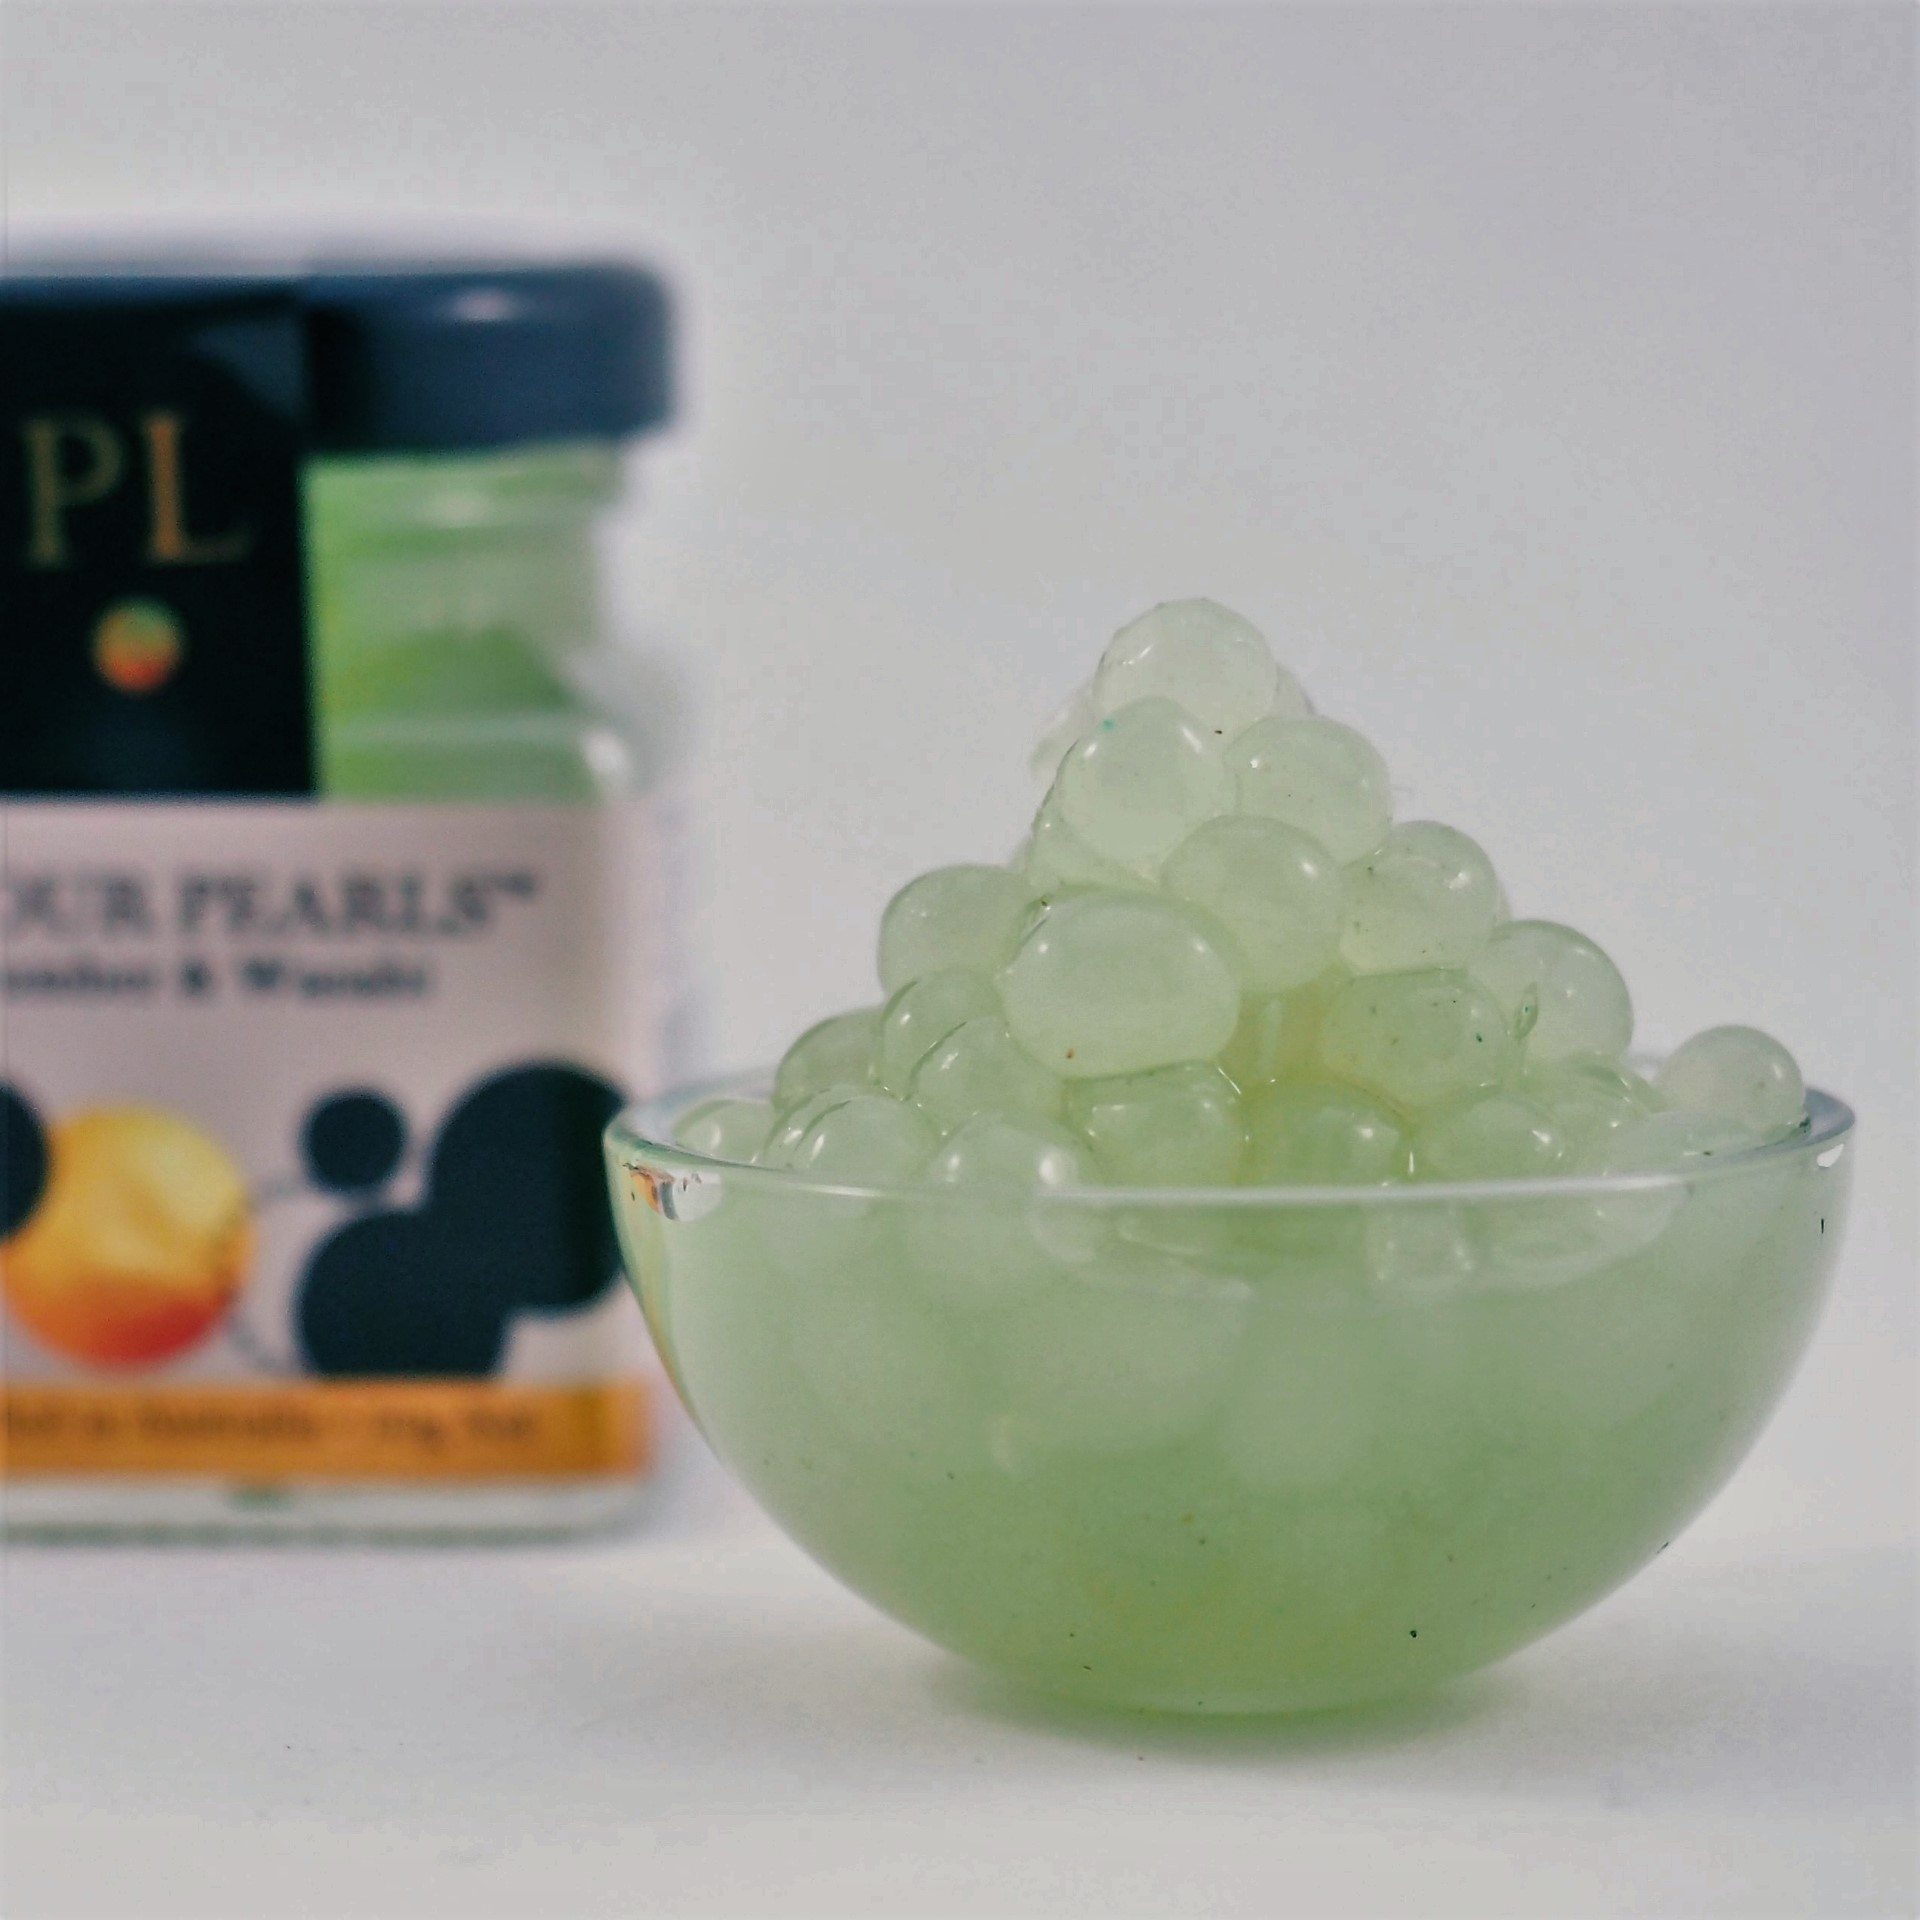 Cucumber and Wasabi Flavour Pearls Limited Edition